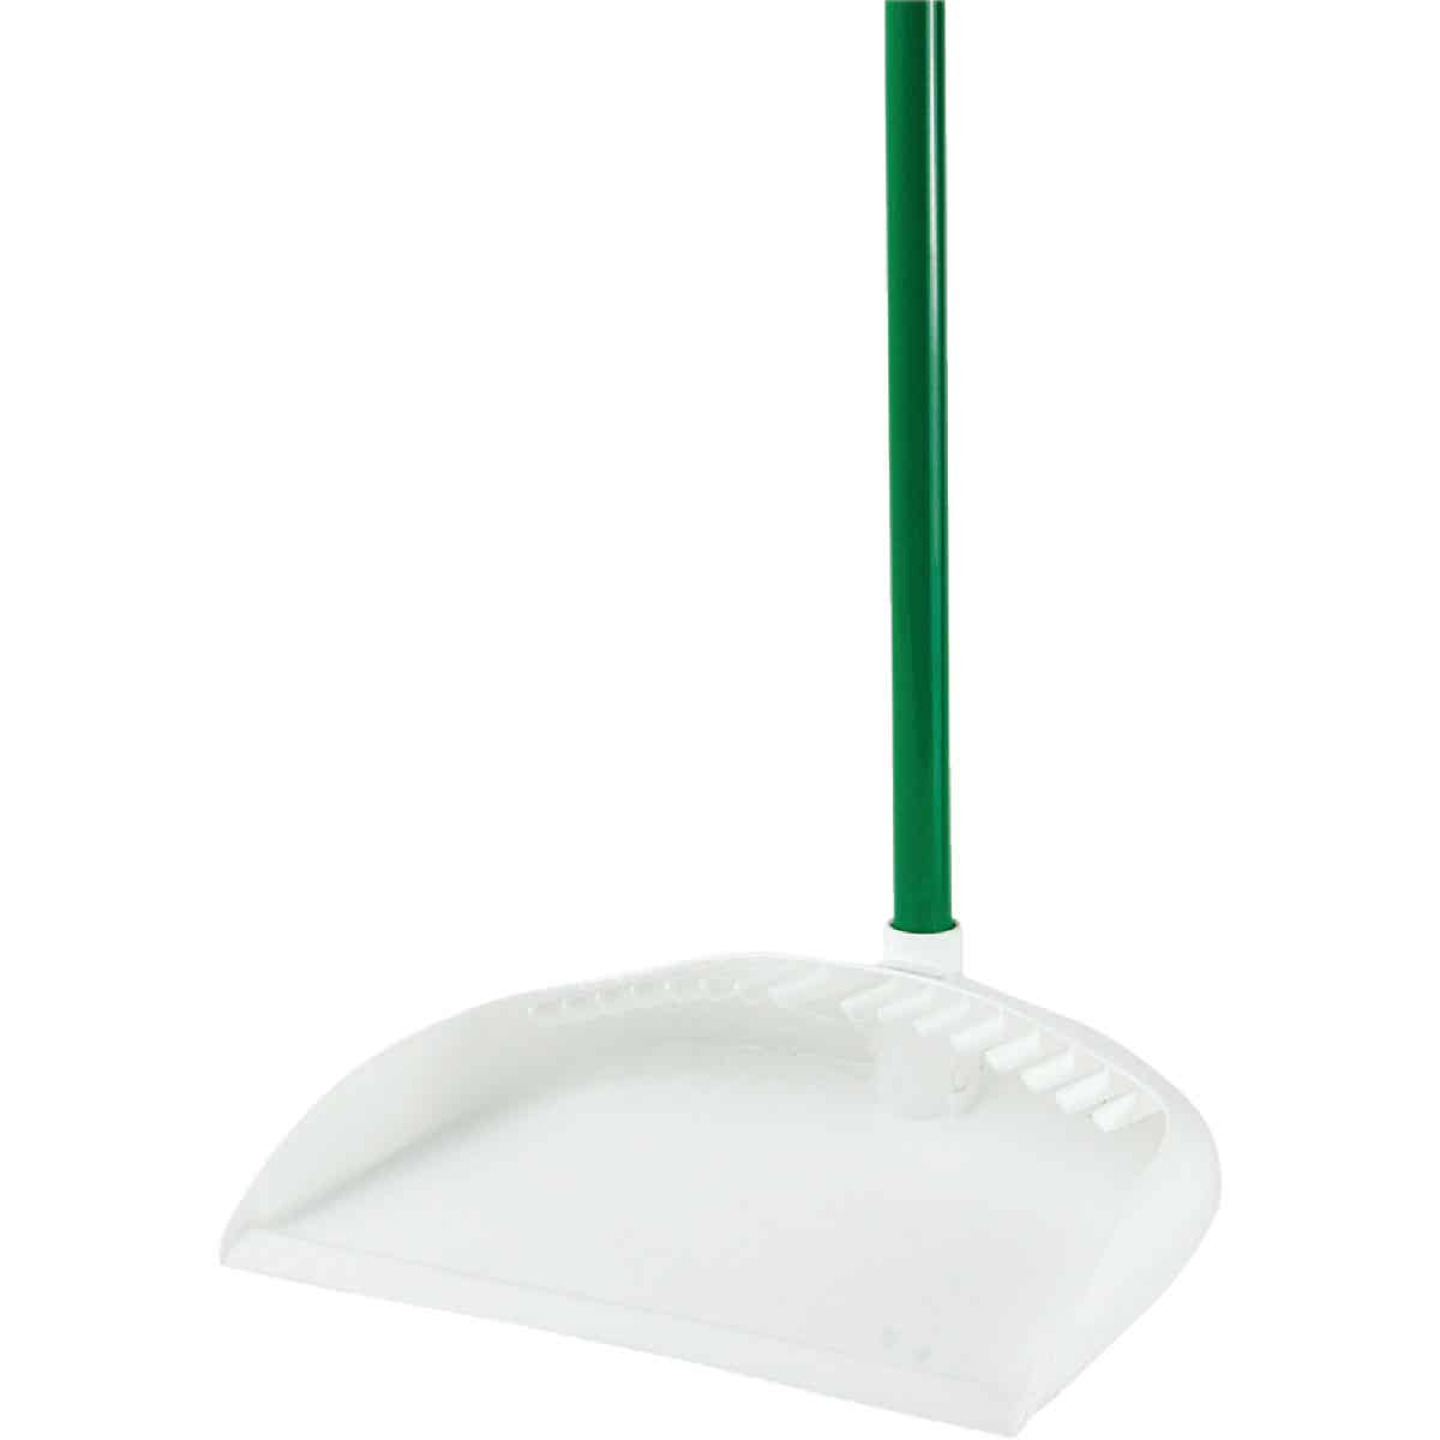 Libman Upright Long Handled Dust Pan Image 1